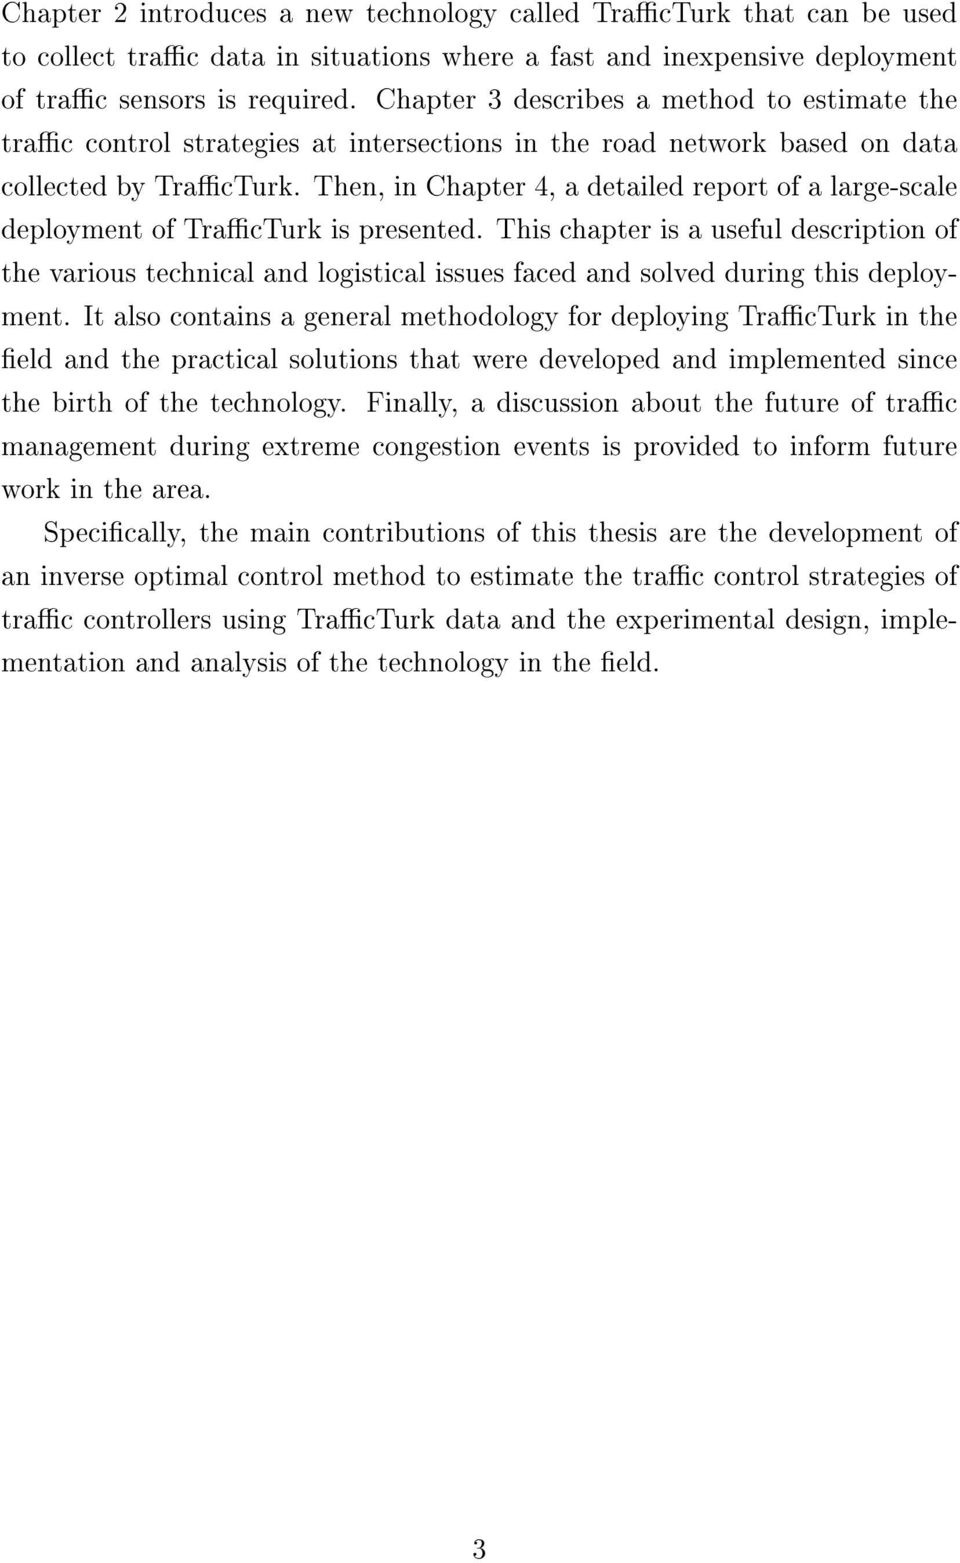 Then, in Chapter 4, a detailed report of a large-scale deployment of TracTurk is presented.